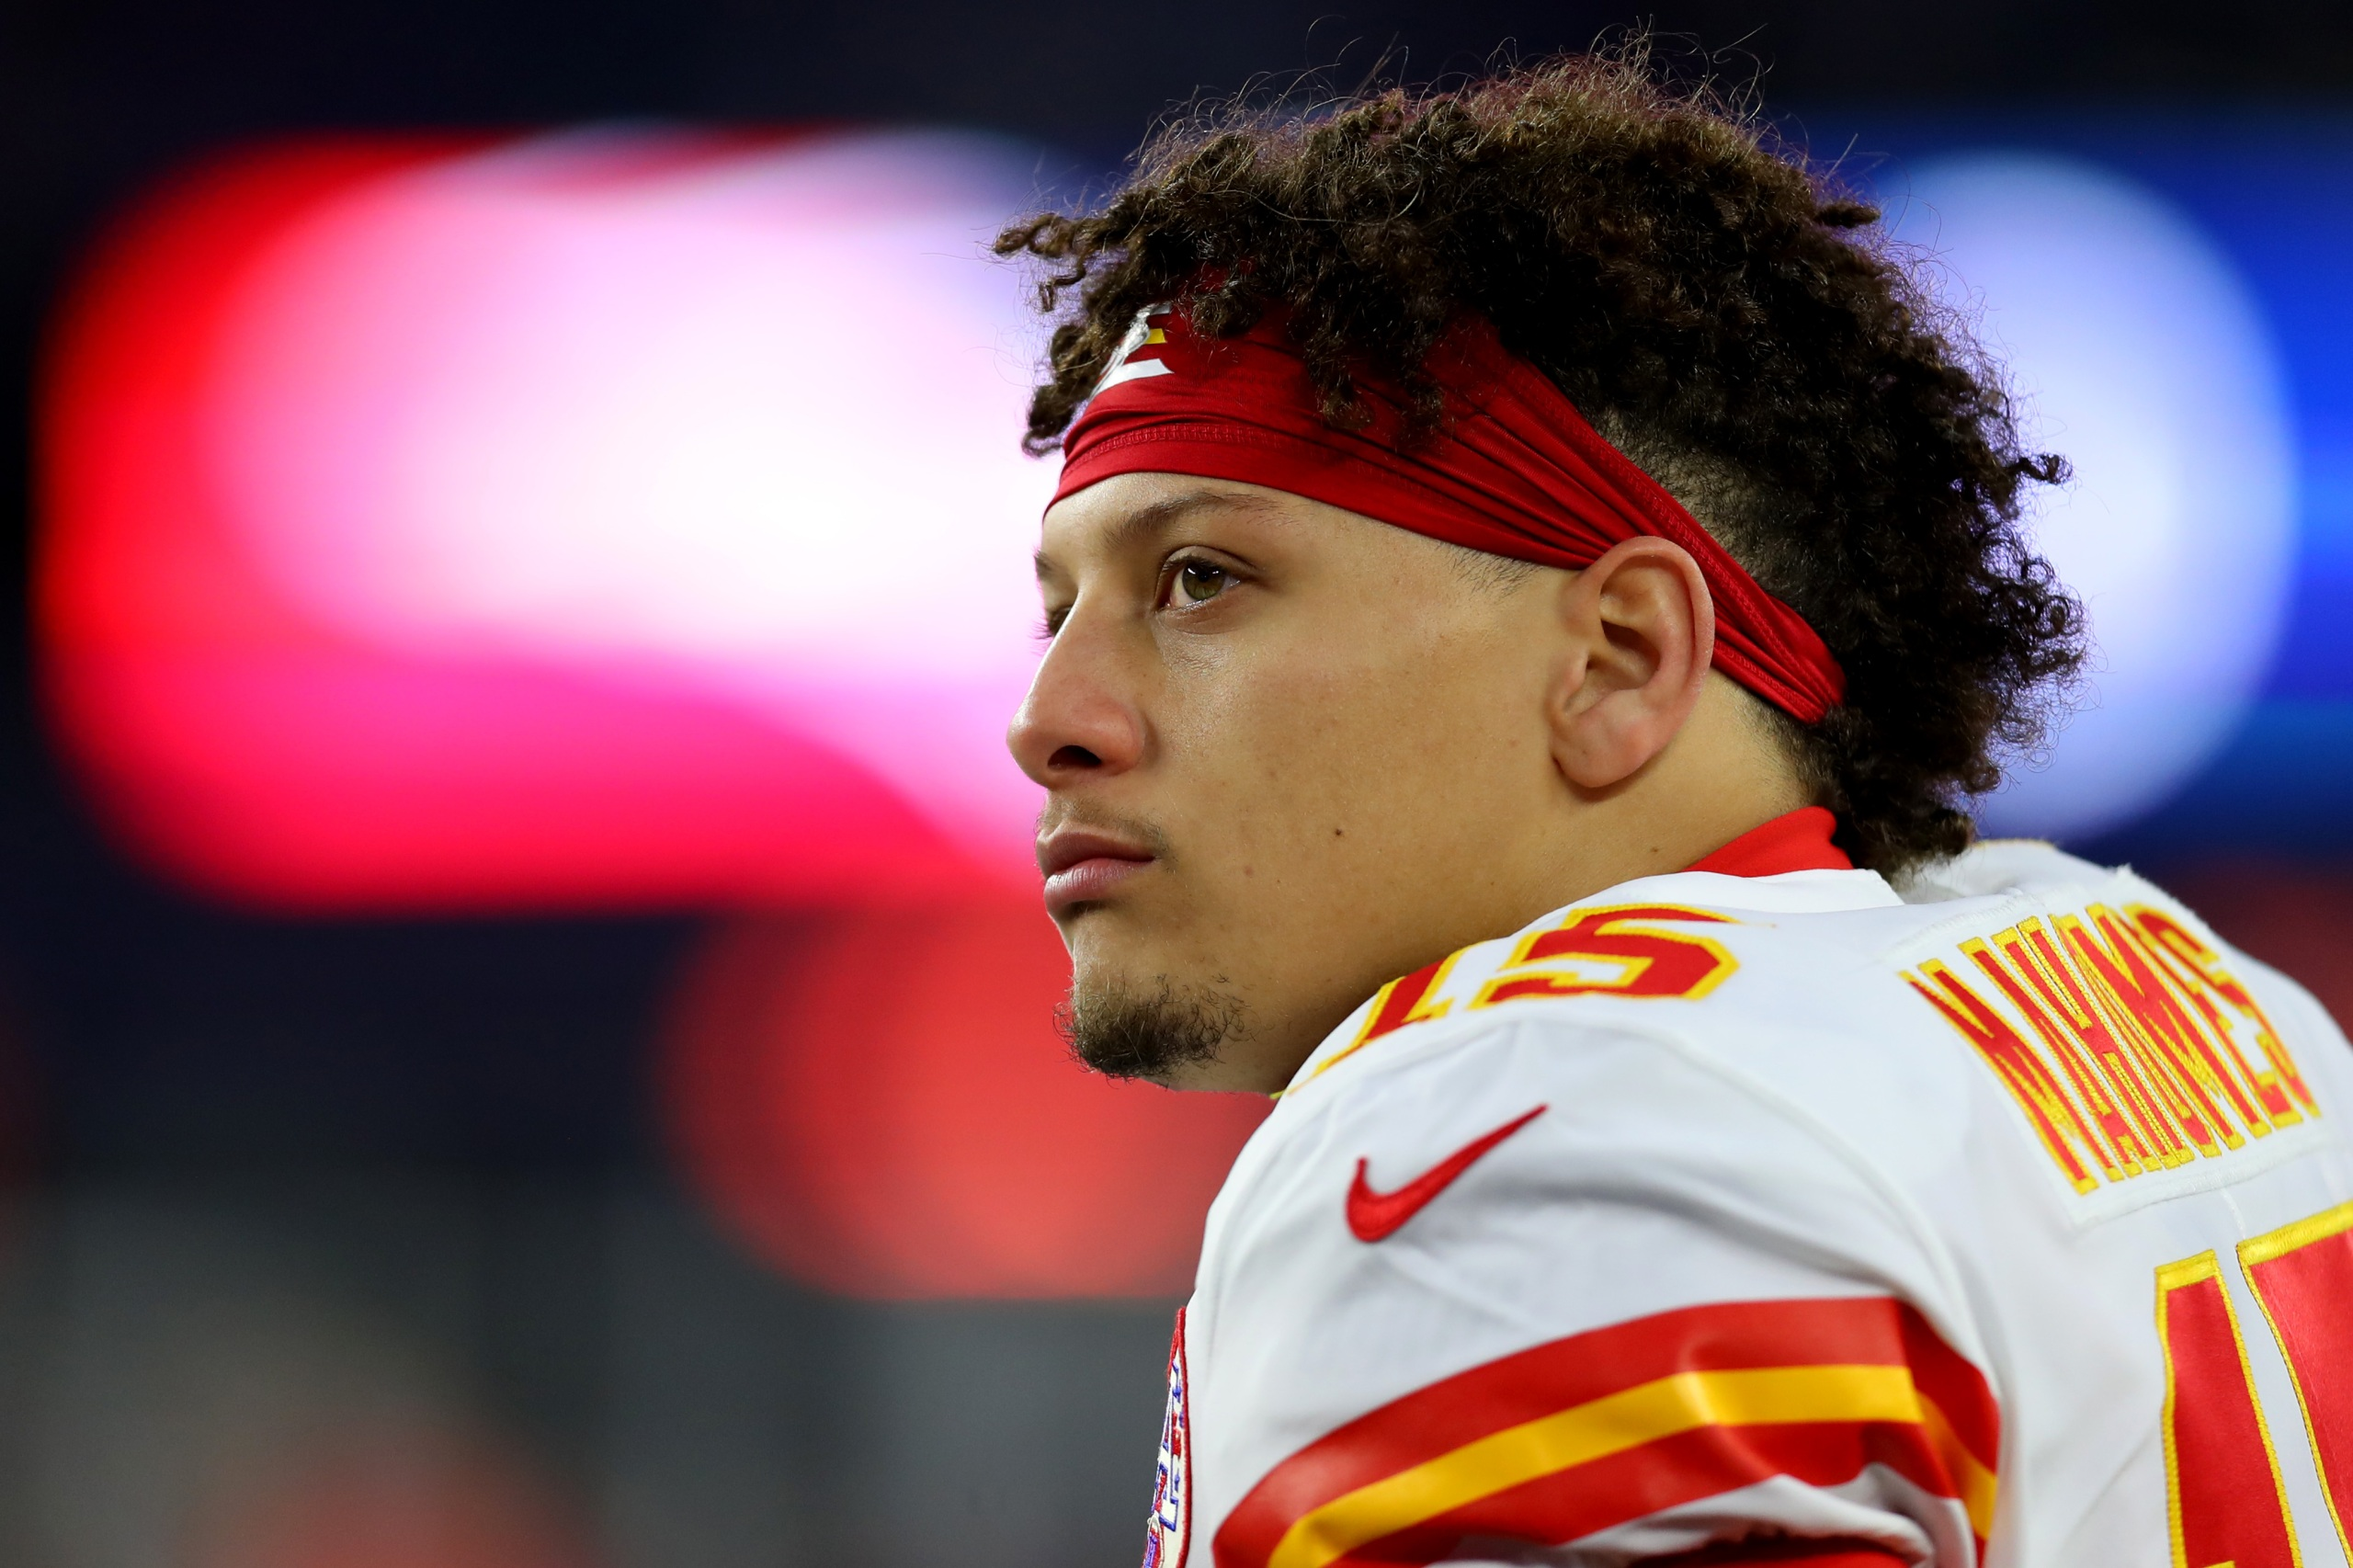 Mahomes Foundation Provides Grant For 15 Scholarships For